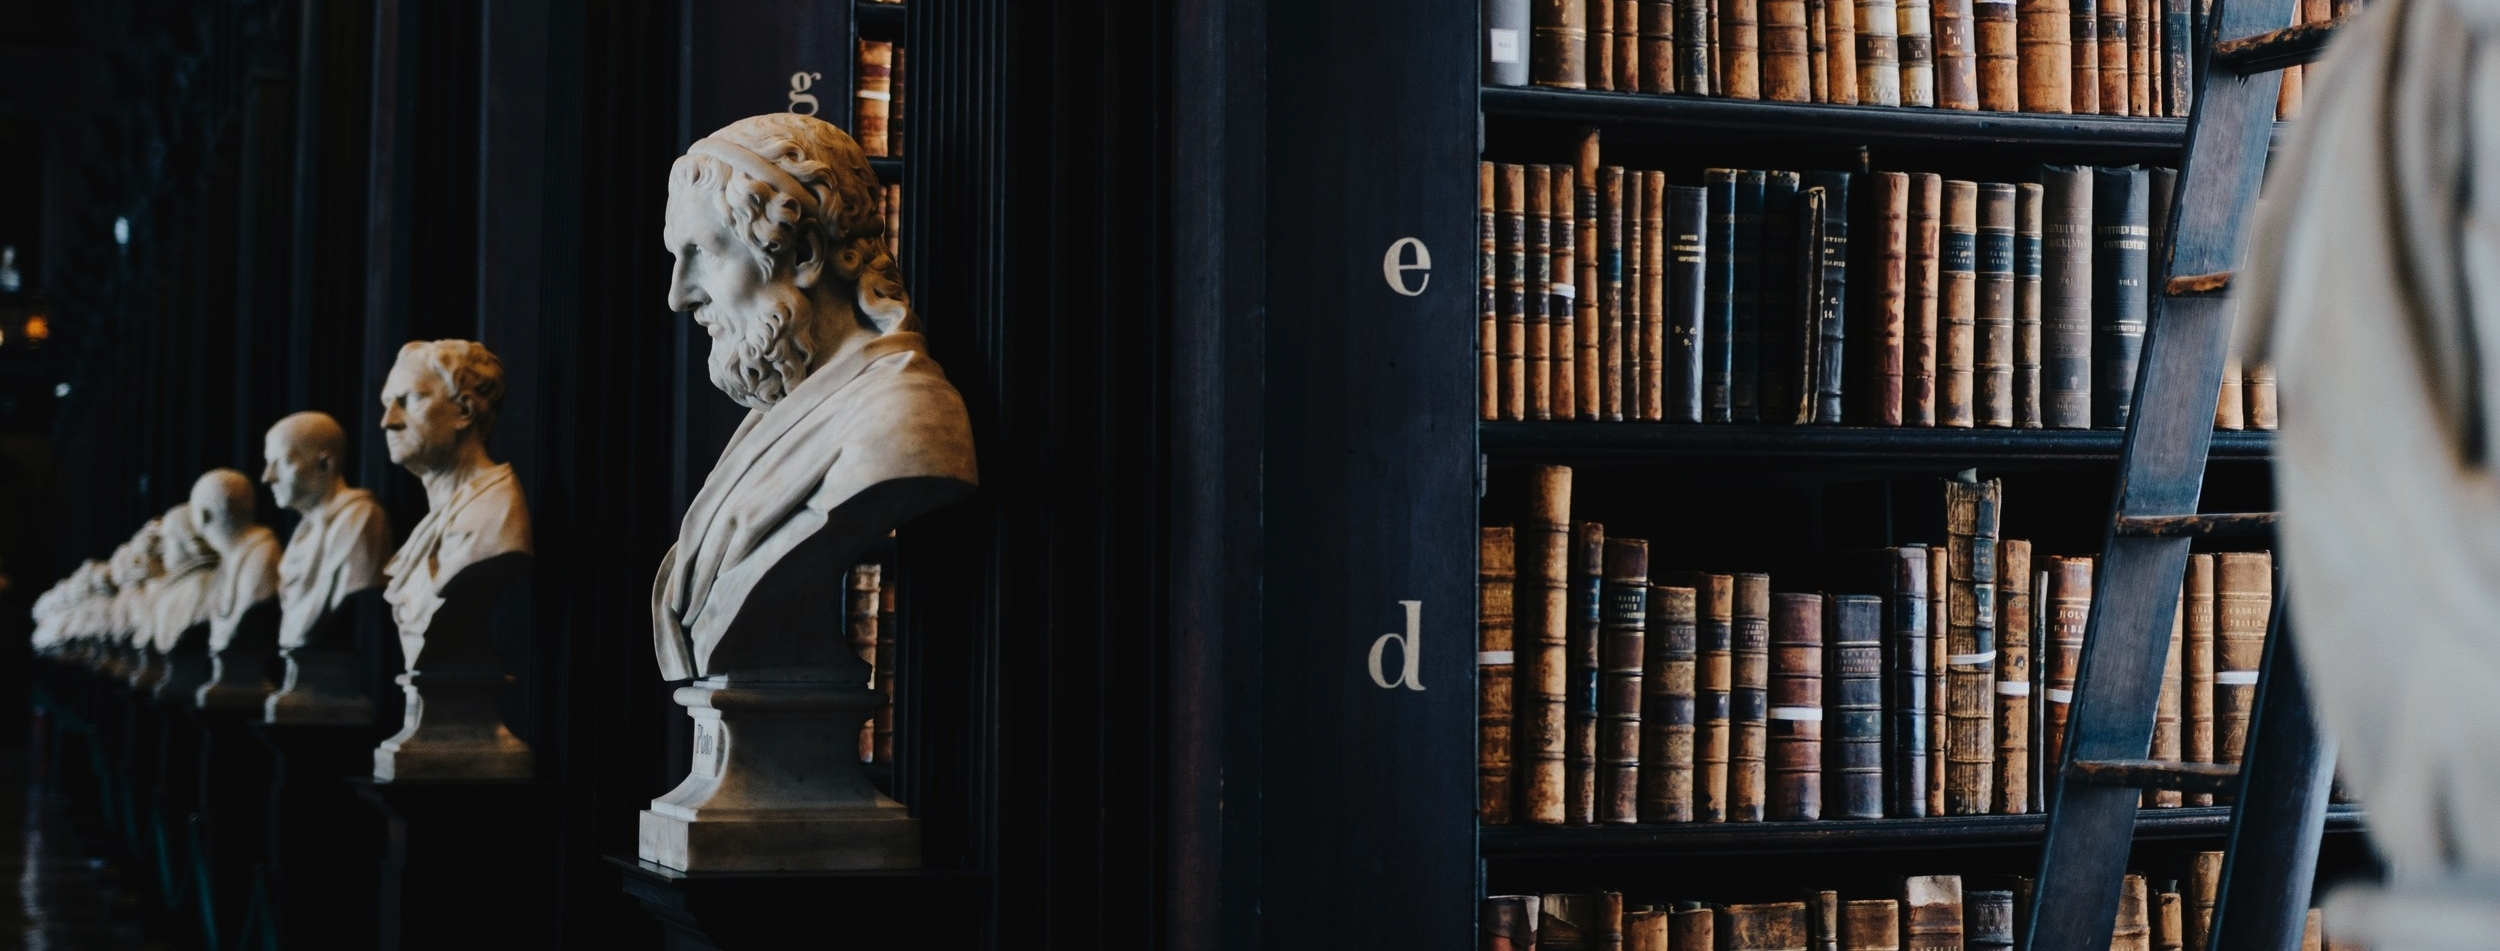 Learn More - about our Solutions for Law Firms & Attorneys